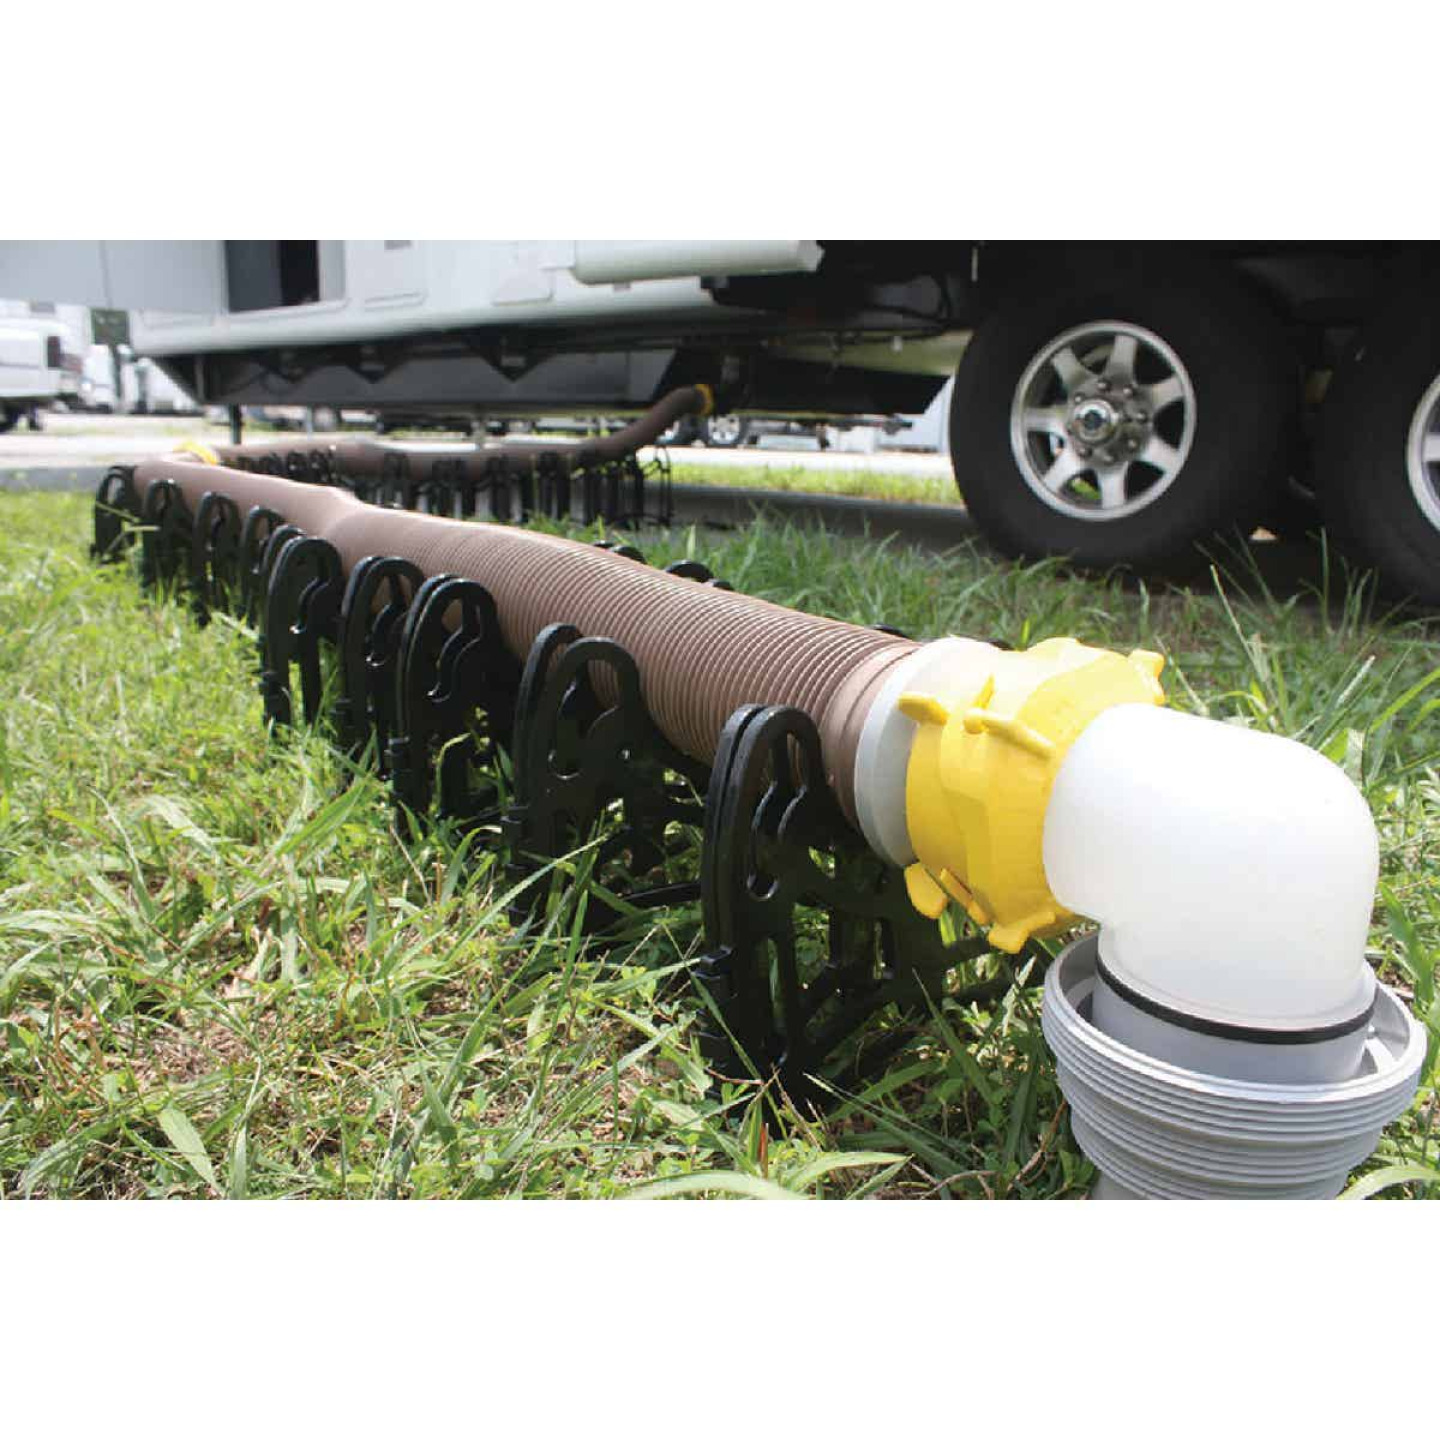 Camco 10 Ft. Revolution Swivel RV Sewer Kit Image 2